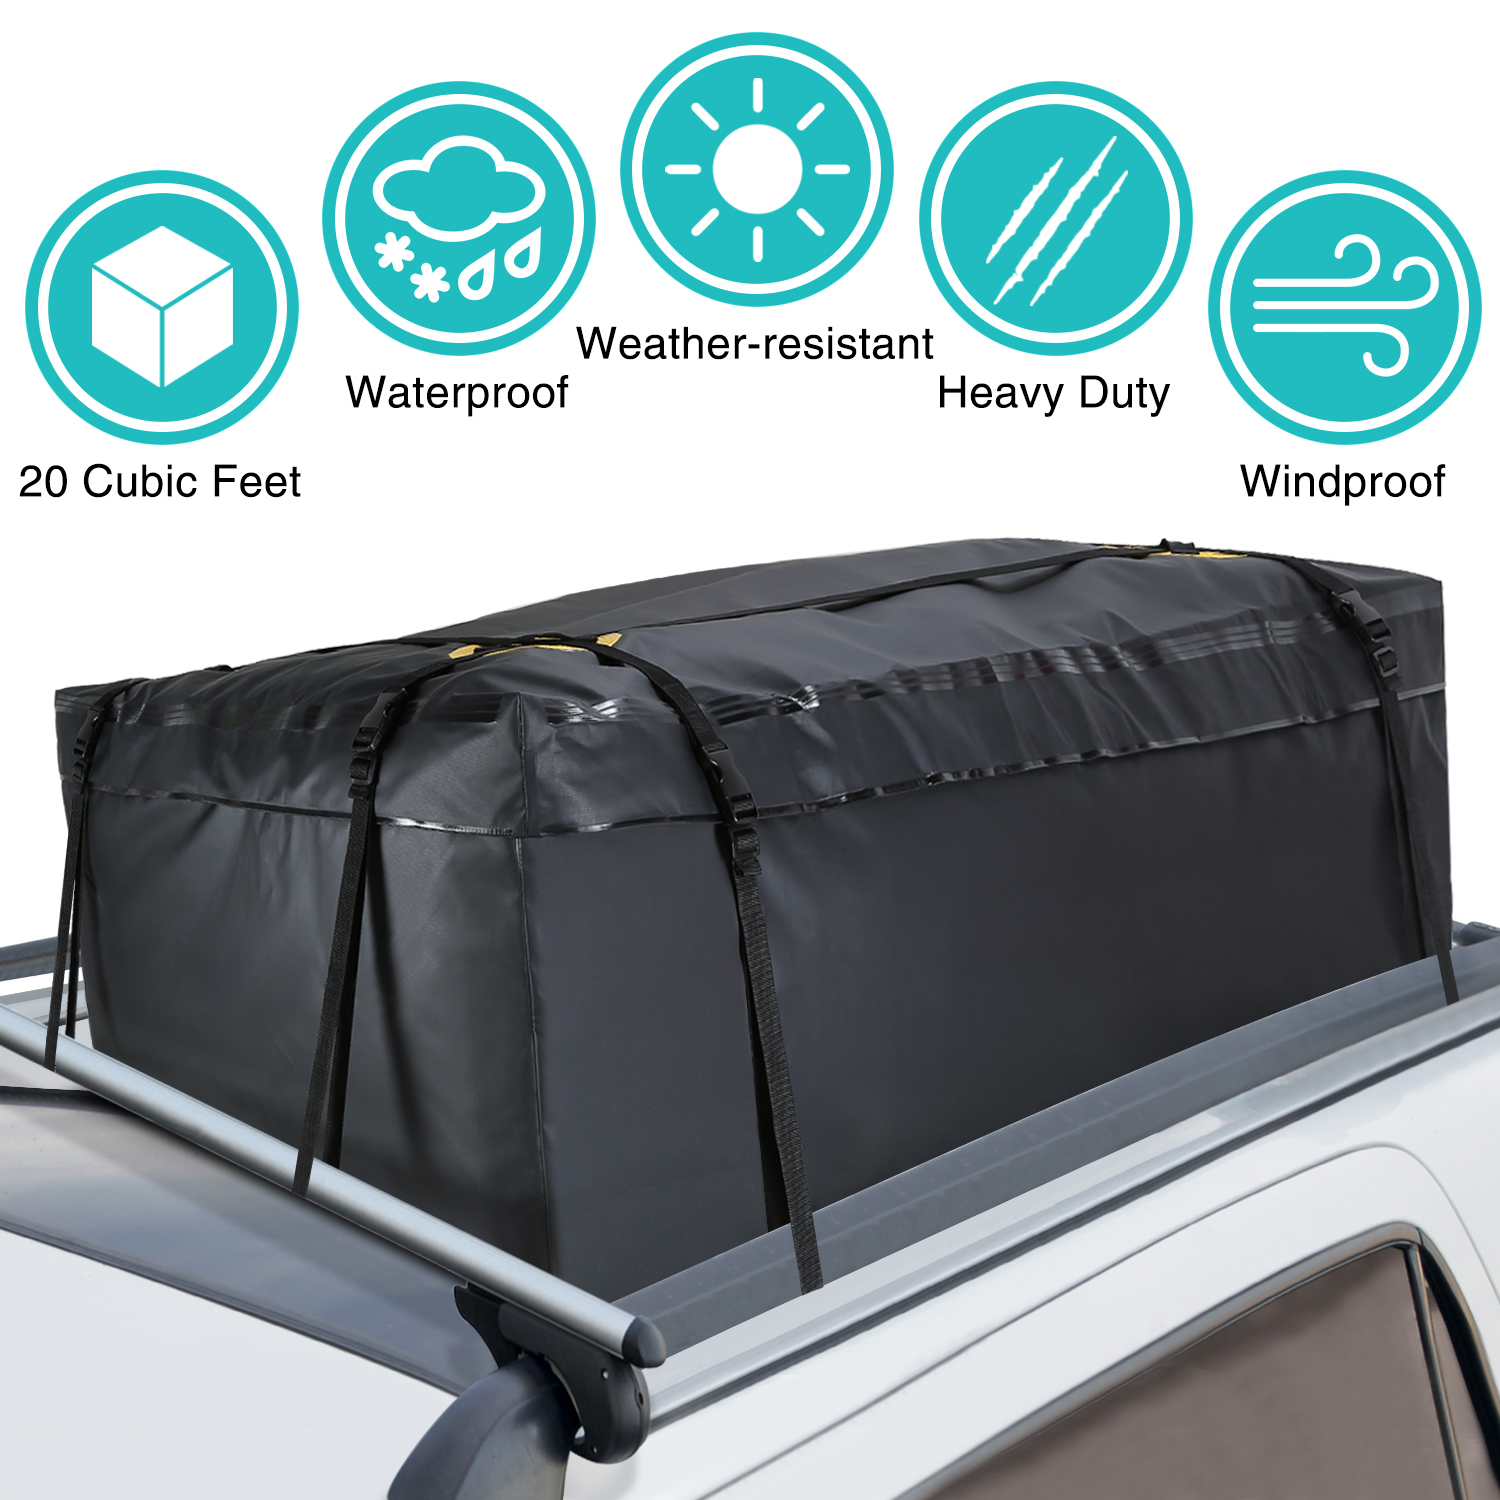 Modokit 100% Waterproof Car Cargo Roof Bag Roof Top Cargo Bag for Vehicles with Rack Crossbars, Heavy Duty Roof Cargo Bag 22 Cubic Feet